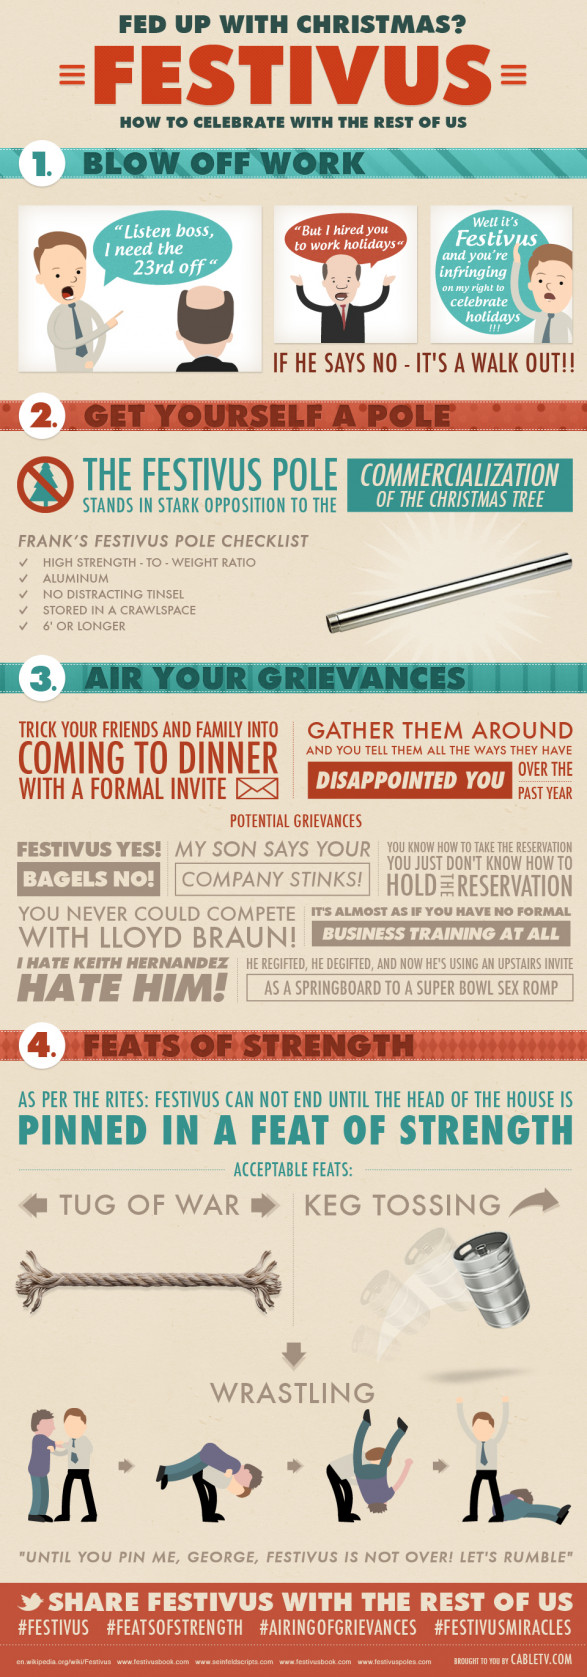 Festivus: How To Celebrate With the Rest of Us